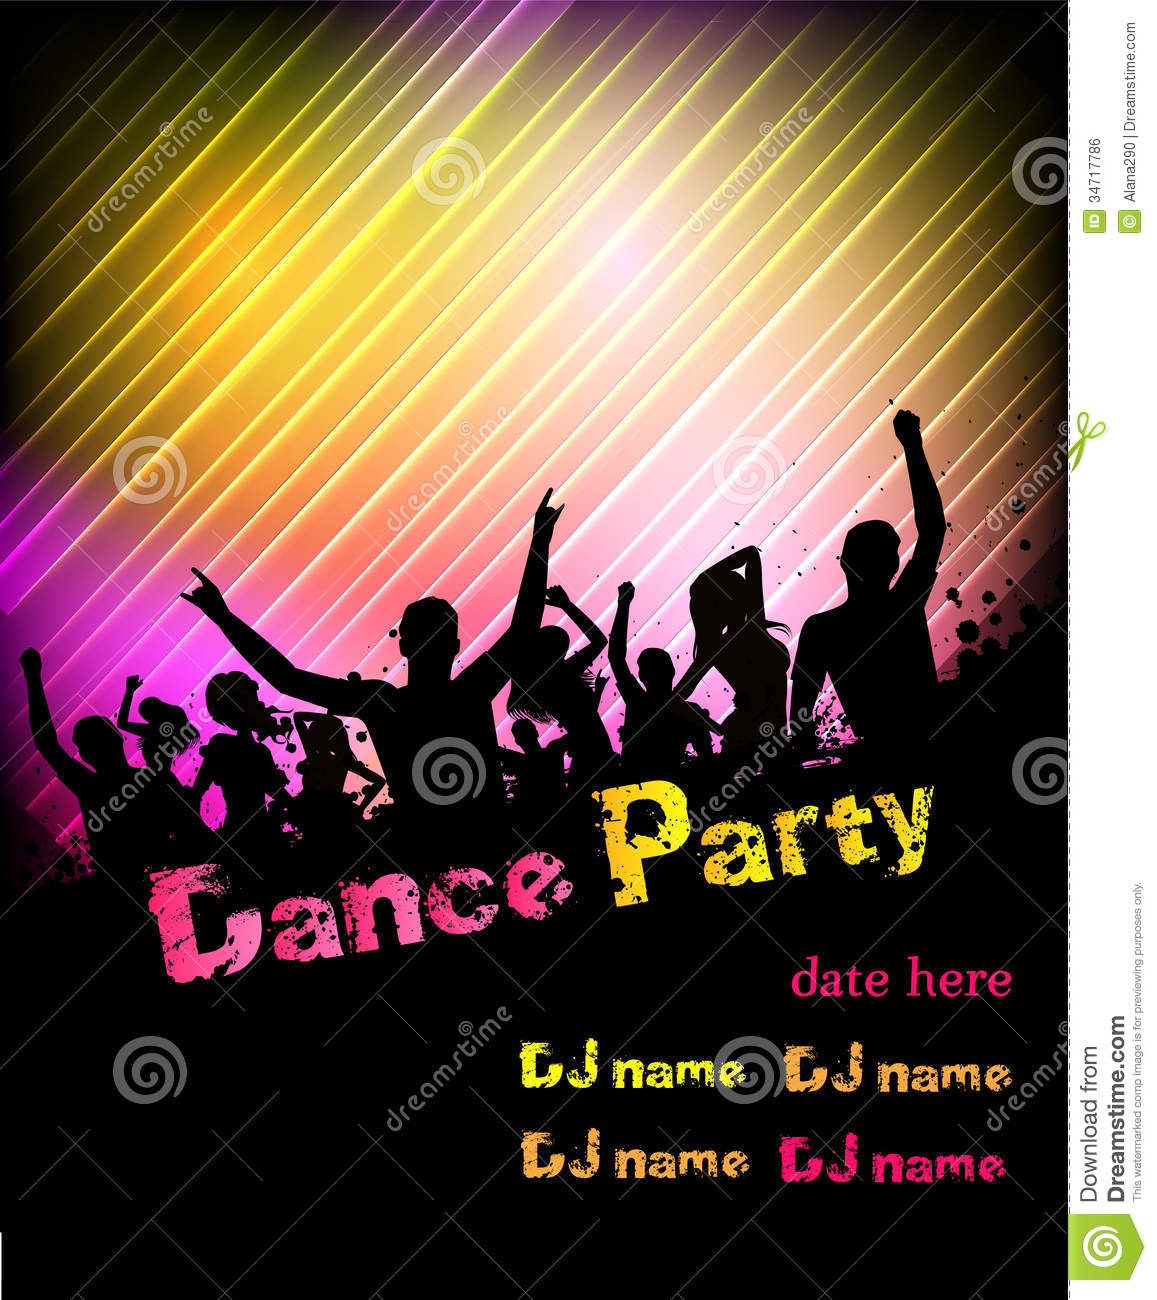 Disco Party Poster Background Royalty Free Stock Image - Image ...